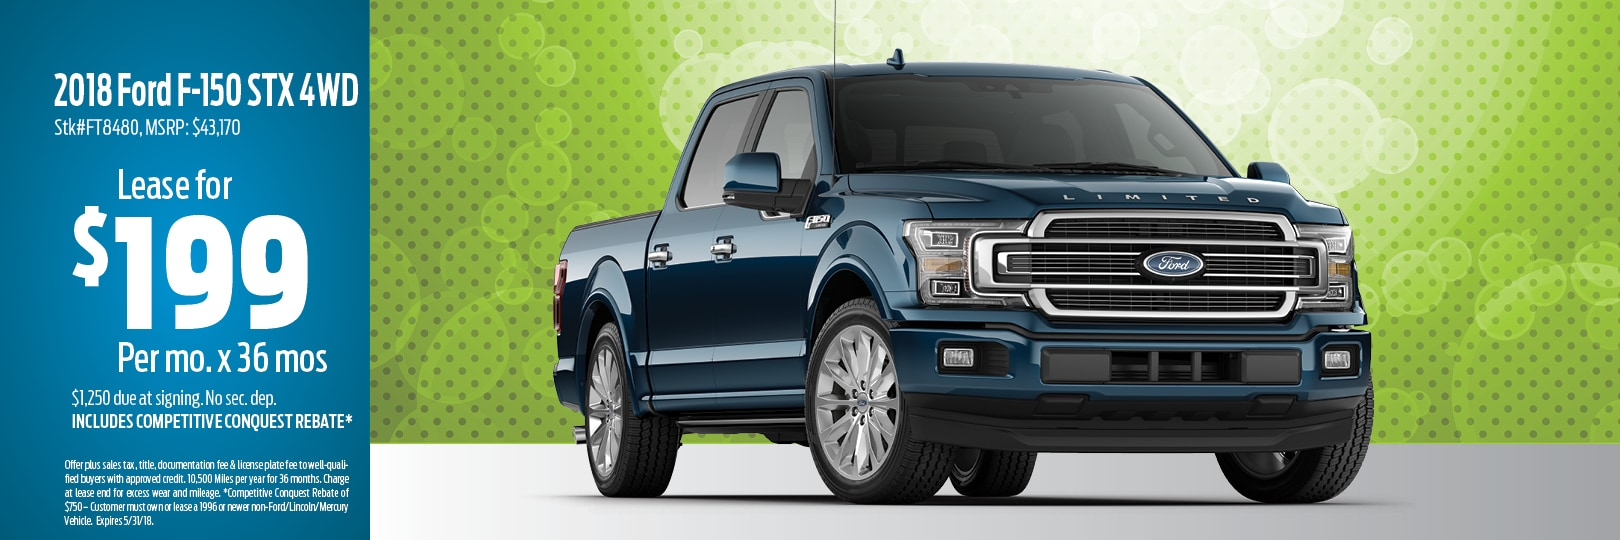 2018 Ford F-150 Lease Deal in Muskegon, MI